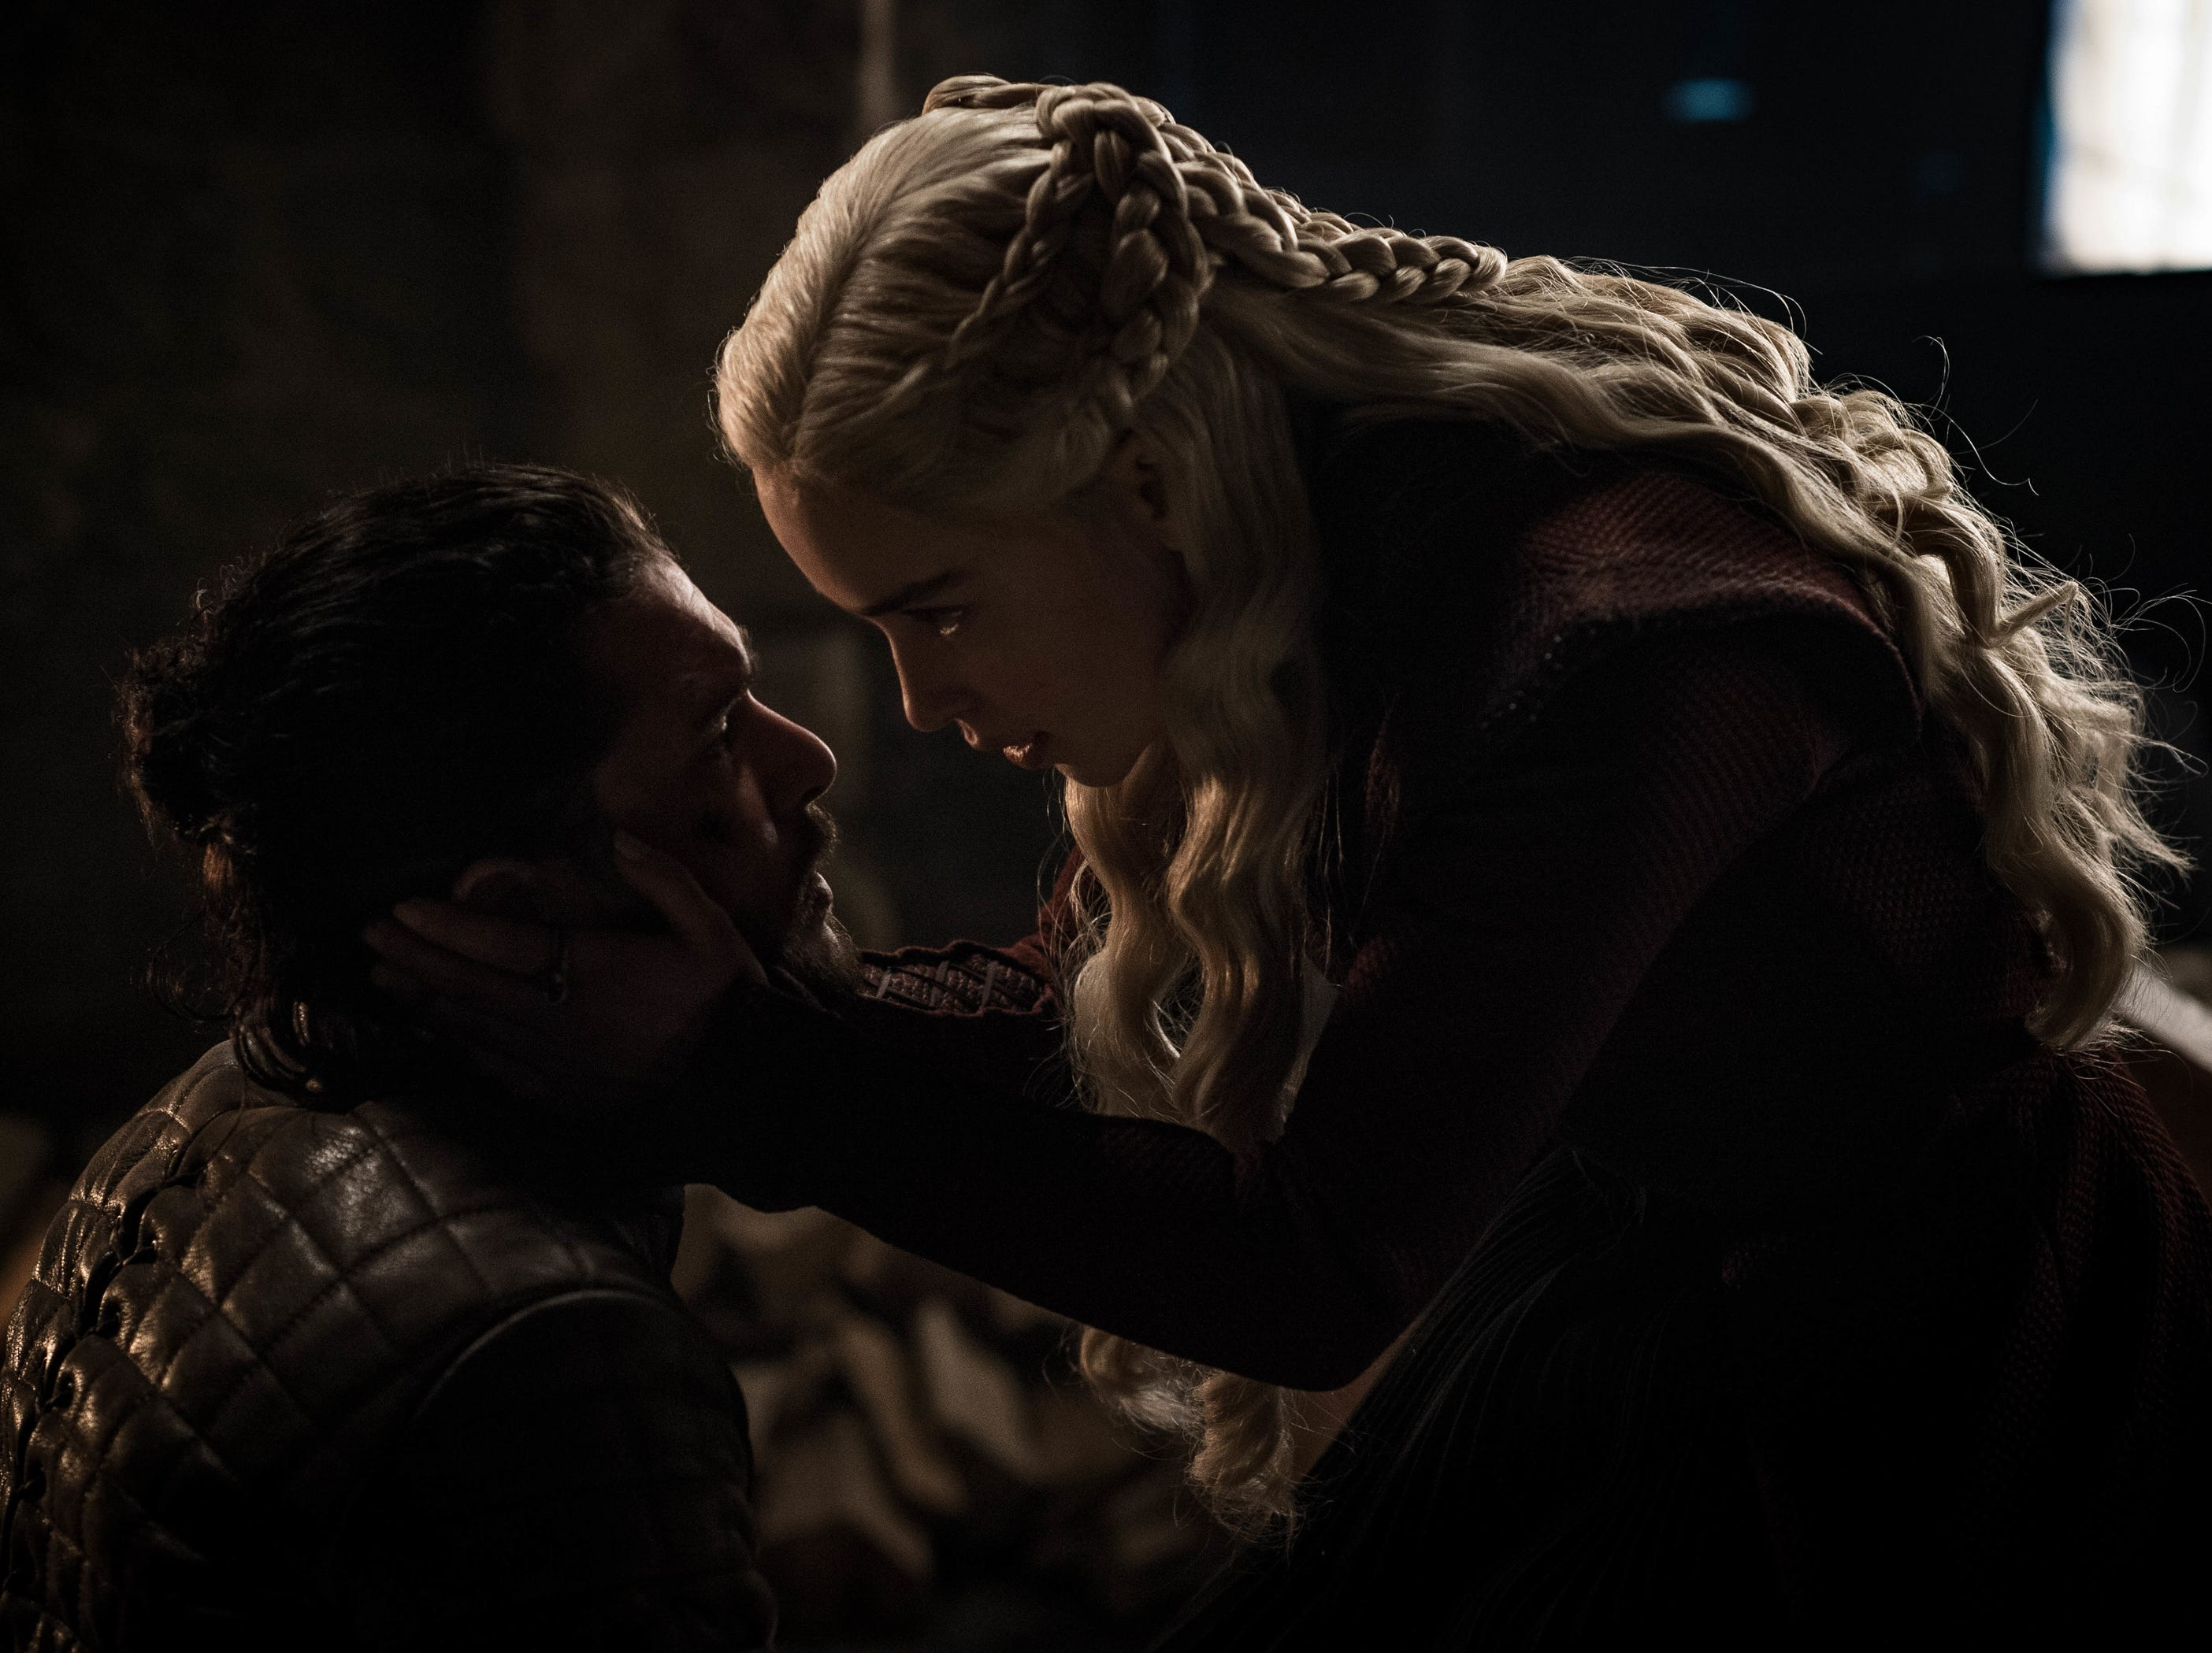 Jon Snow (Kit Harington), left, and Daenerys Targaryen (Emilia Clarke) love each other, but there are, shall we say, complications.